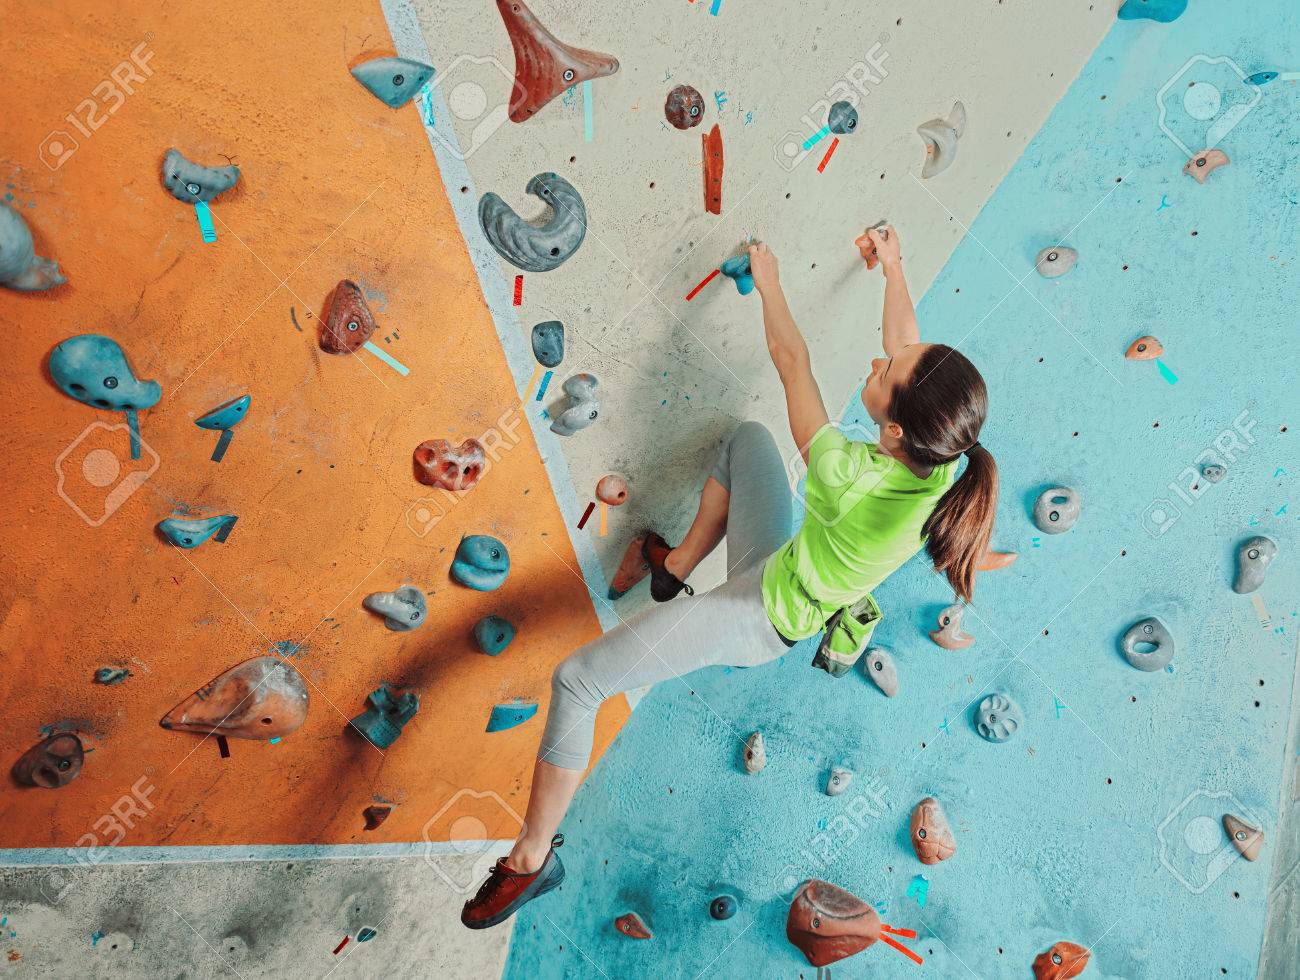 Beautiful sporty young woman climbing on practical wall in gym, bouldering - 41544008